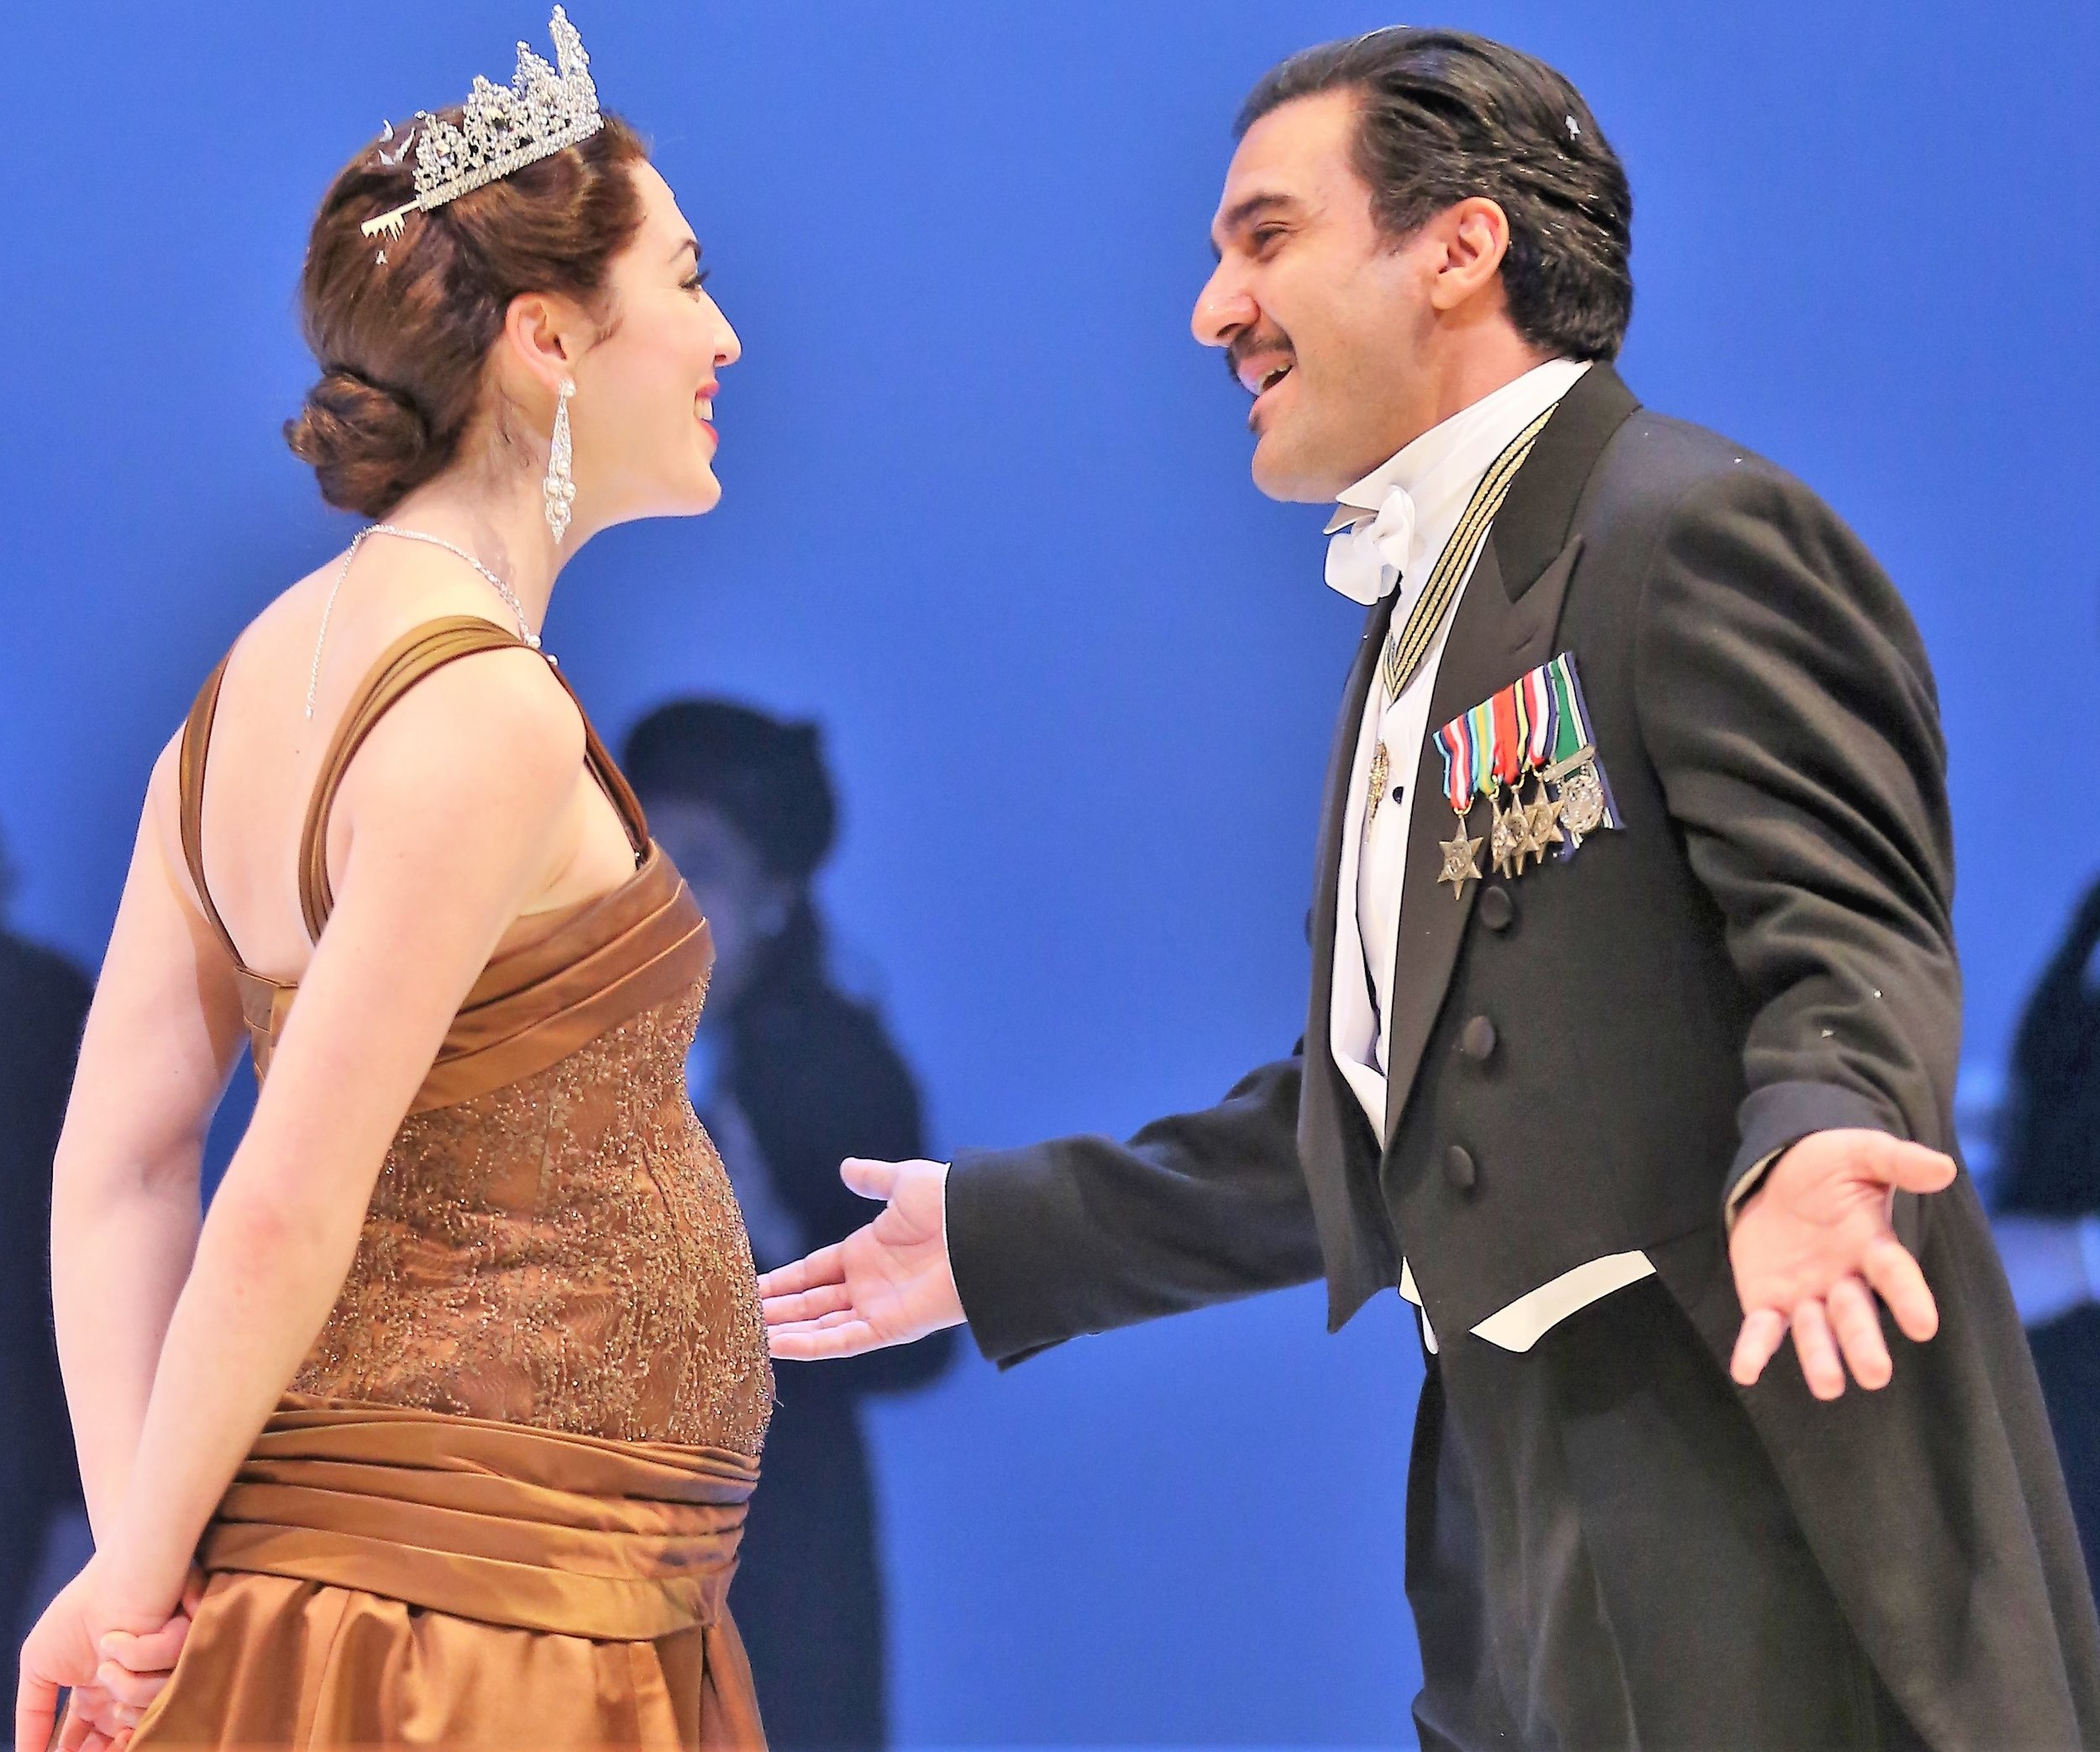 Kelley Curran plays the wronged Queen Hermione, and Dion Mucciacito is Polixenes, King of Bohemia. Photo by Carol Rosegg.